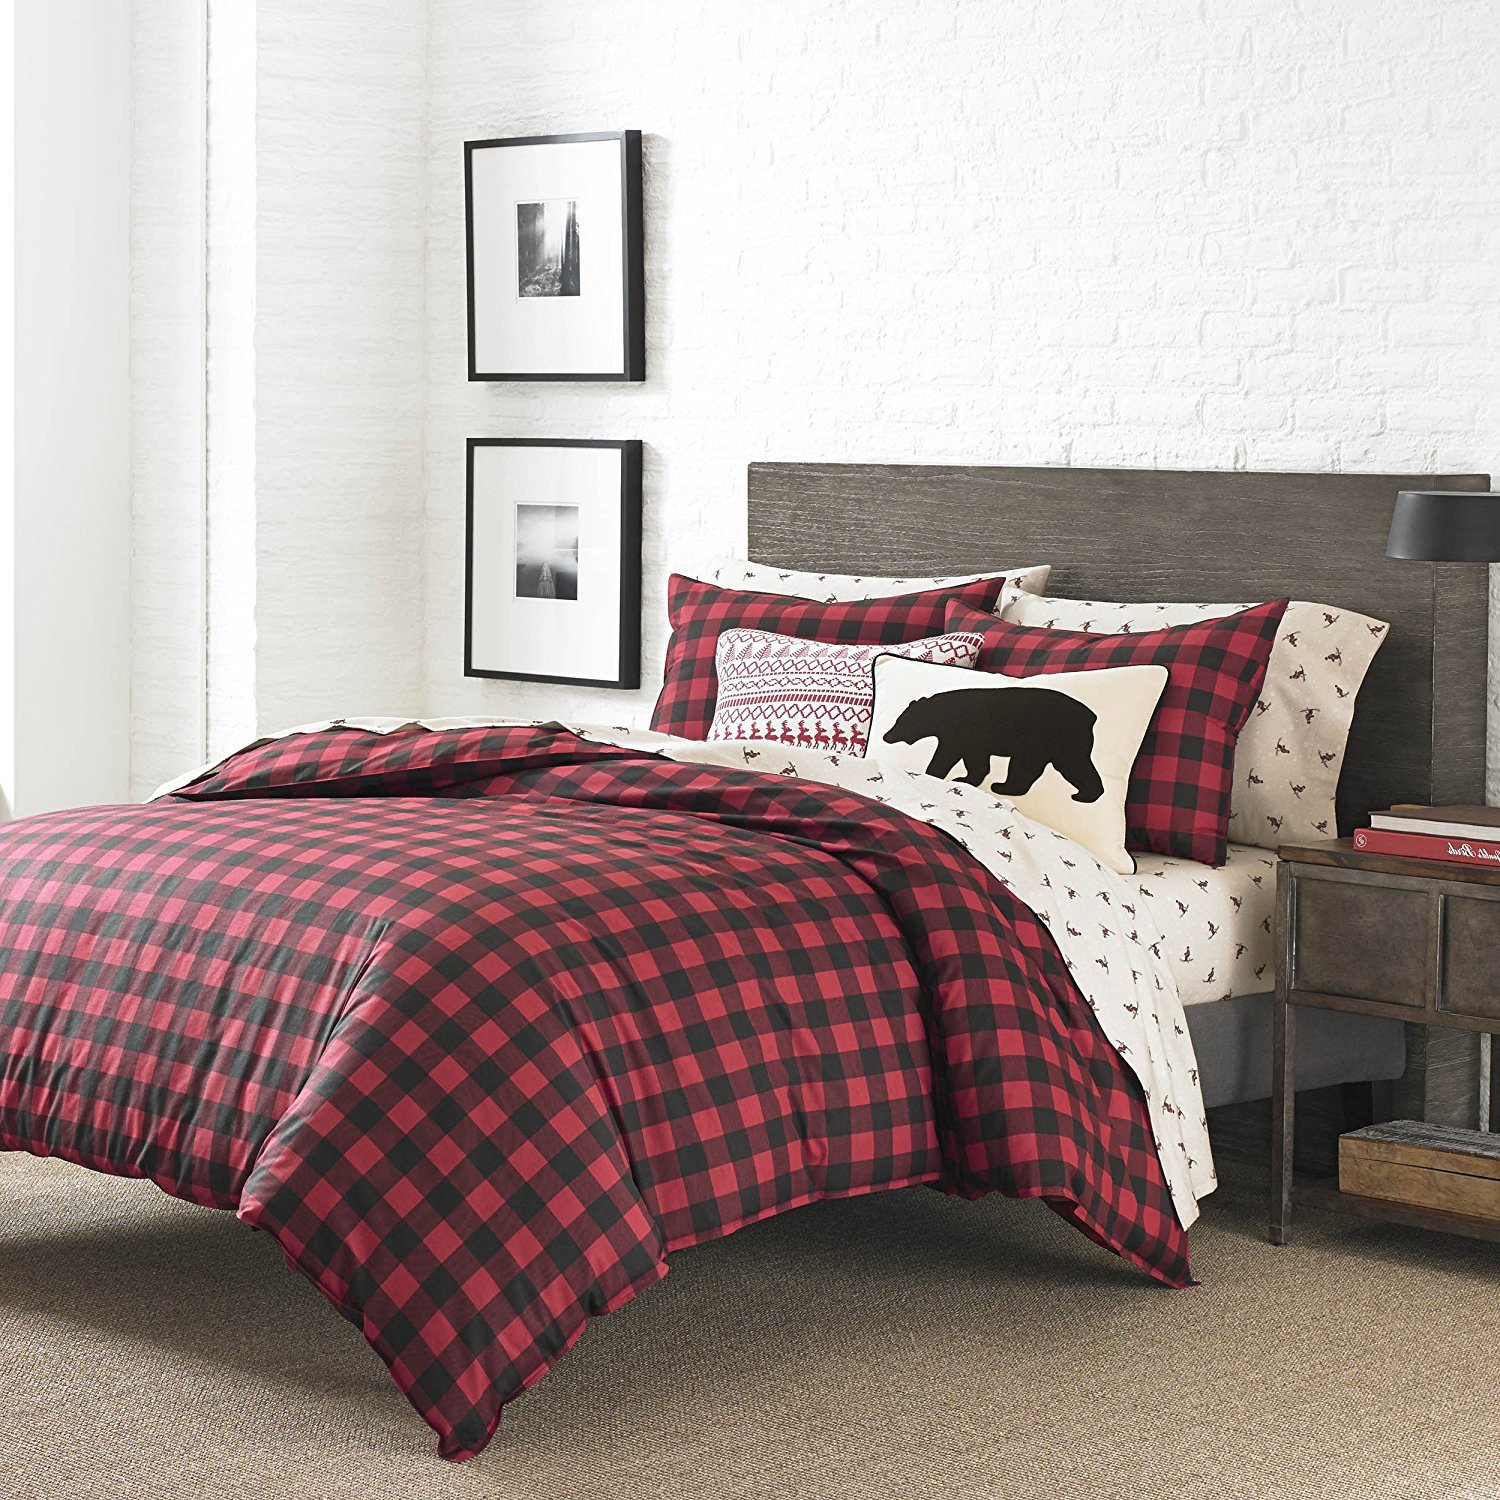 country cabins rustic living ideas nursery lodge patterns livingroom quilt rooms log themed room party decorating bedding cabin decorations gifts bedroom loversiq decor